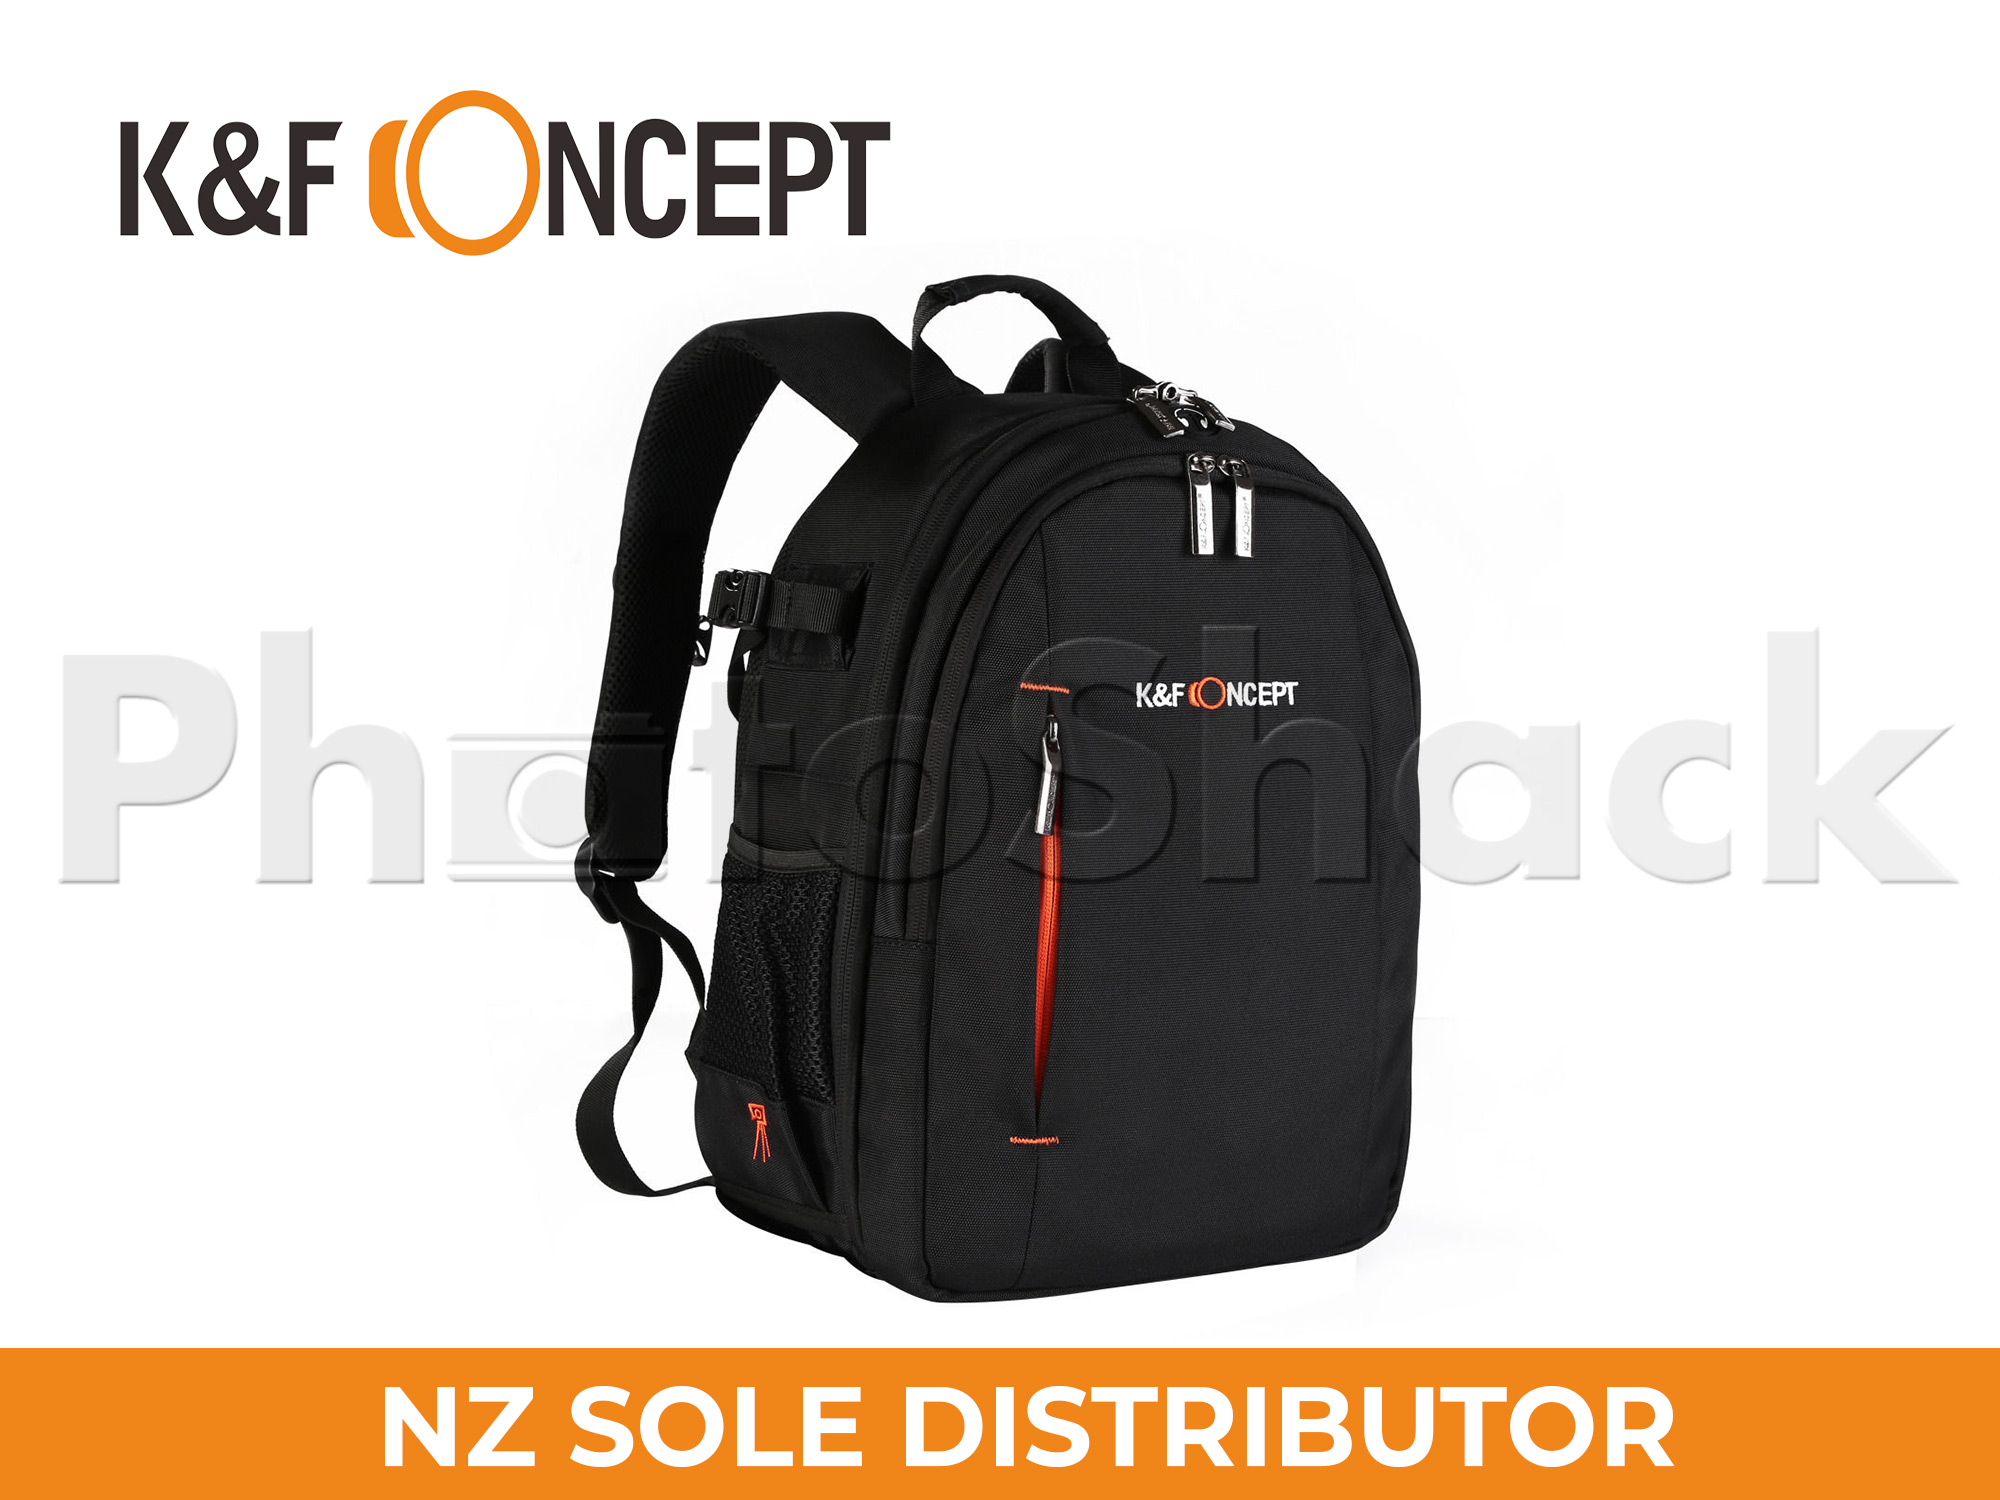 DSLR Large Multifunctional Camera Backpack Bag 25  - K&F Concept